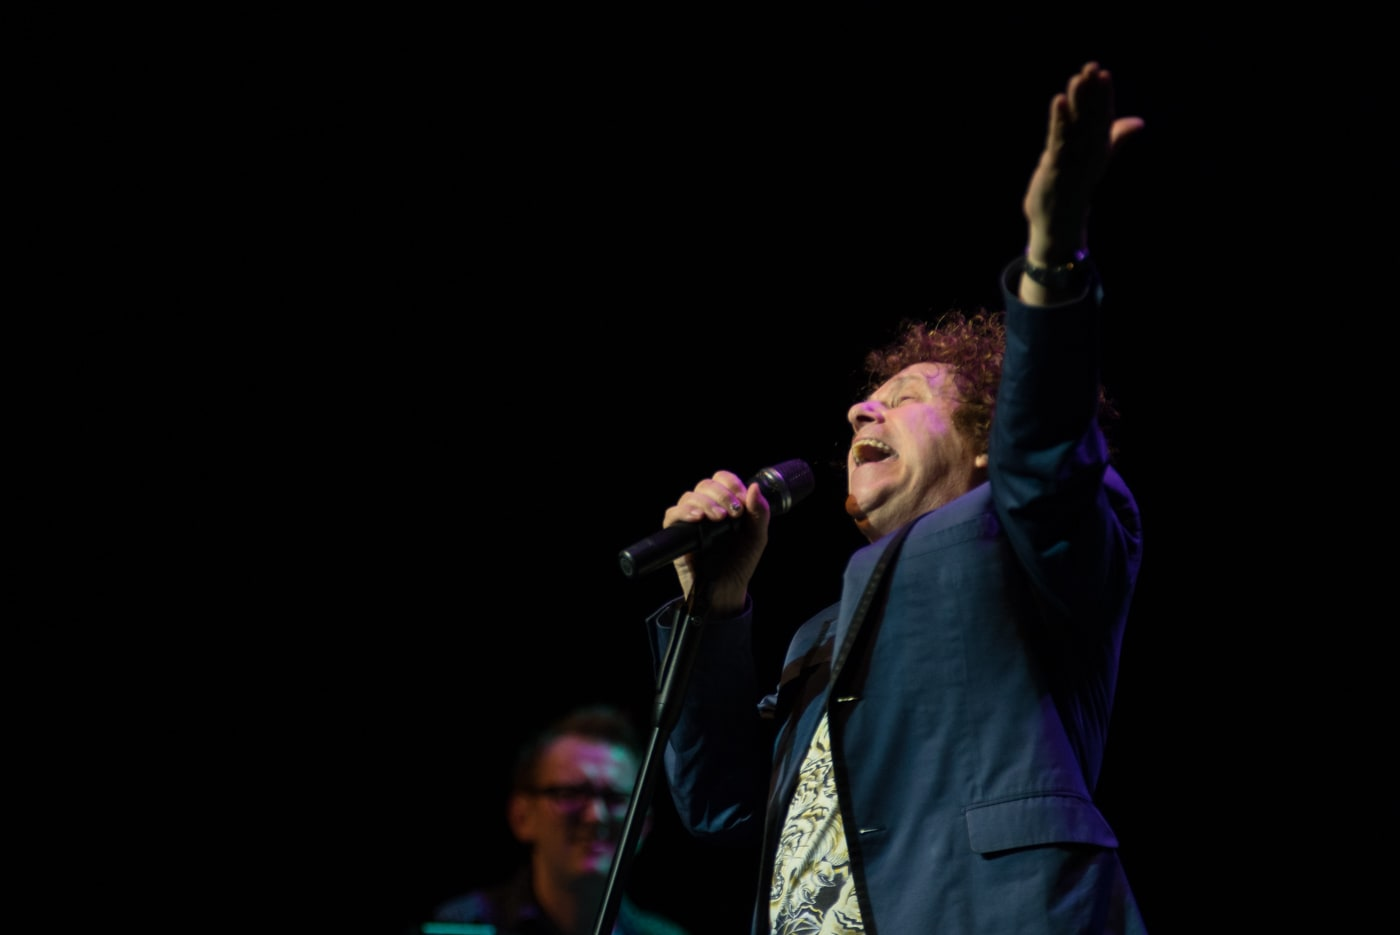 Leo Sayer at Bord Gais Energy Theatre by Sean Smyth (16-10-15) (62 of 129)